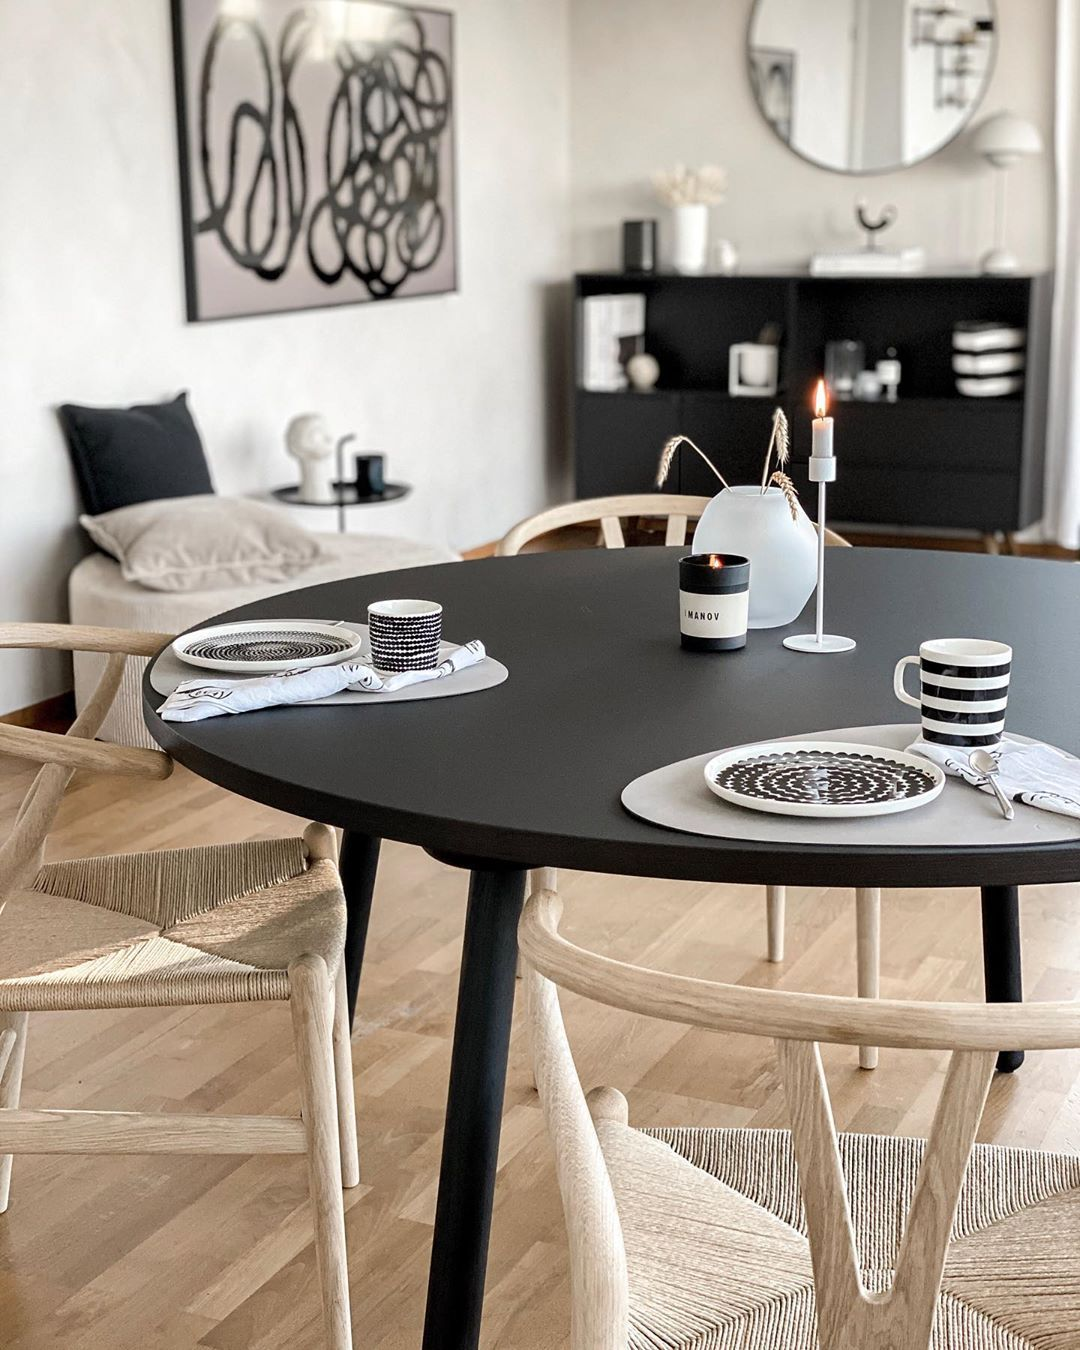 17 Scandinavian Dining Tables With Hygge Style In 2020 Scandinavian Dining Table Scandi Dining Table Coffee Table